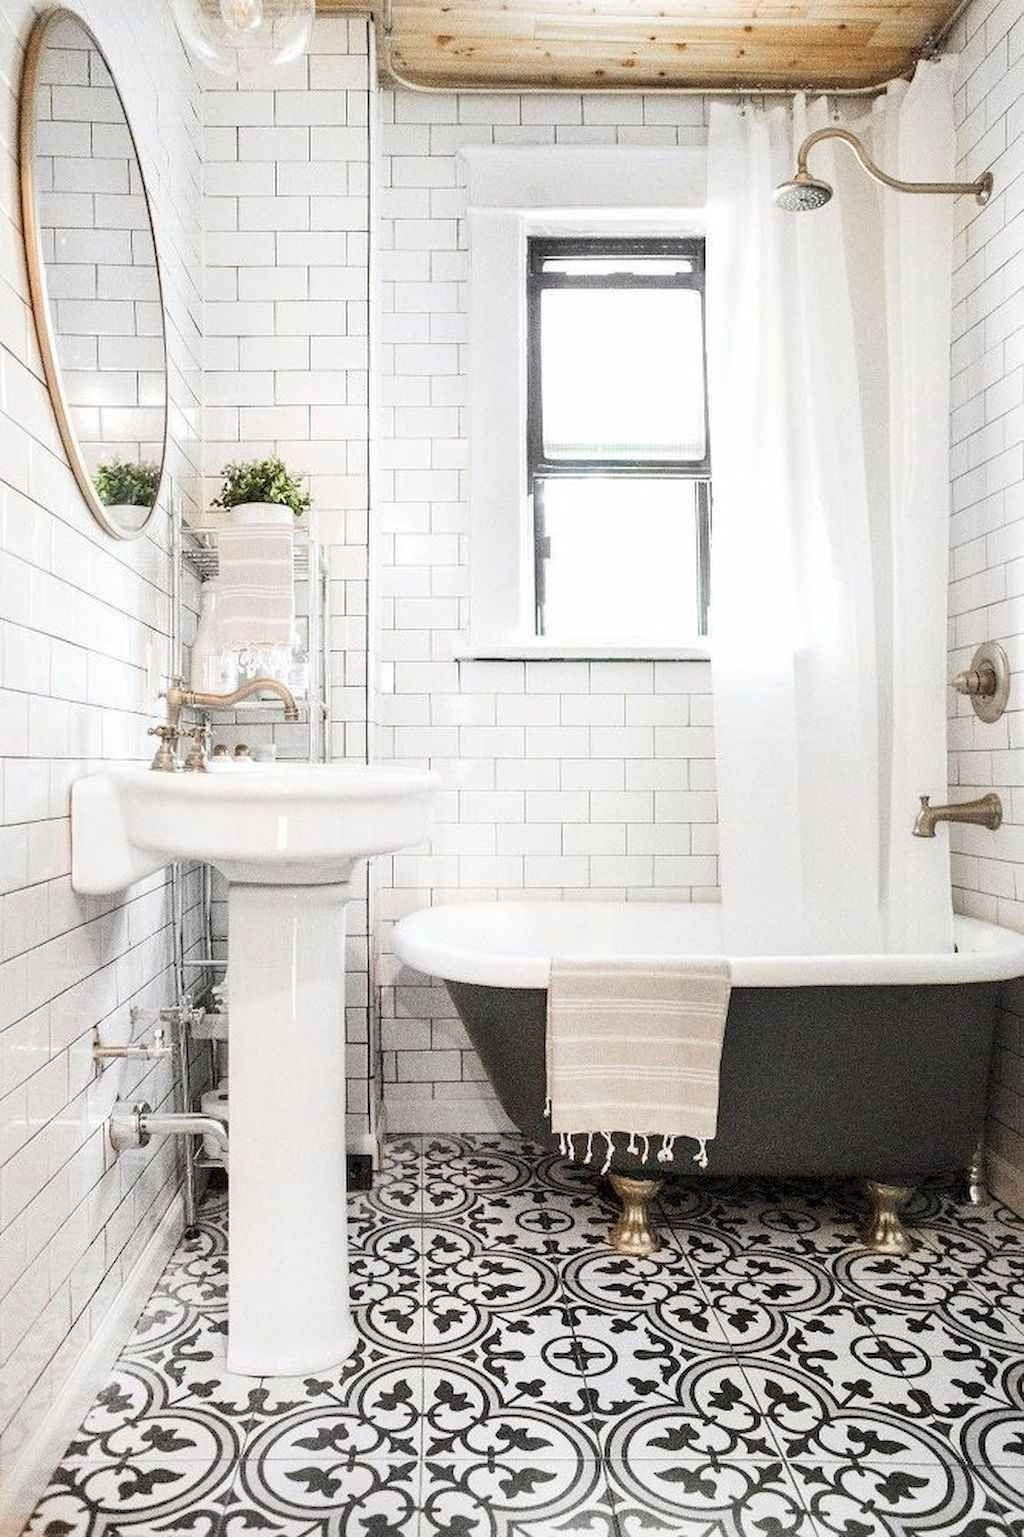 150 Awesome Farmhouse Bathroom Tile Floor Decor Ideas And Remodel To Inspire Your Bathroom Small Bathroom Remodel Bathroom Floor Tiles Bathroom Interior